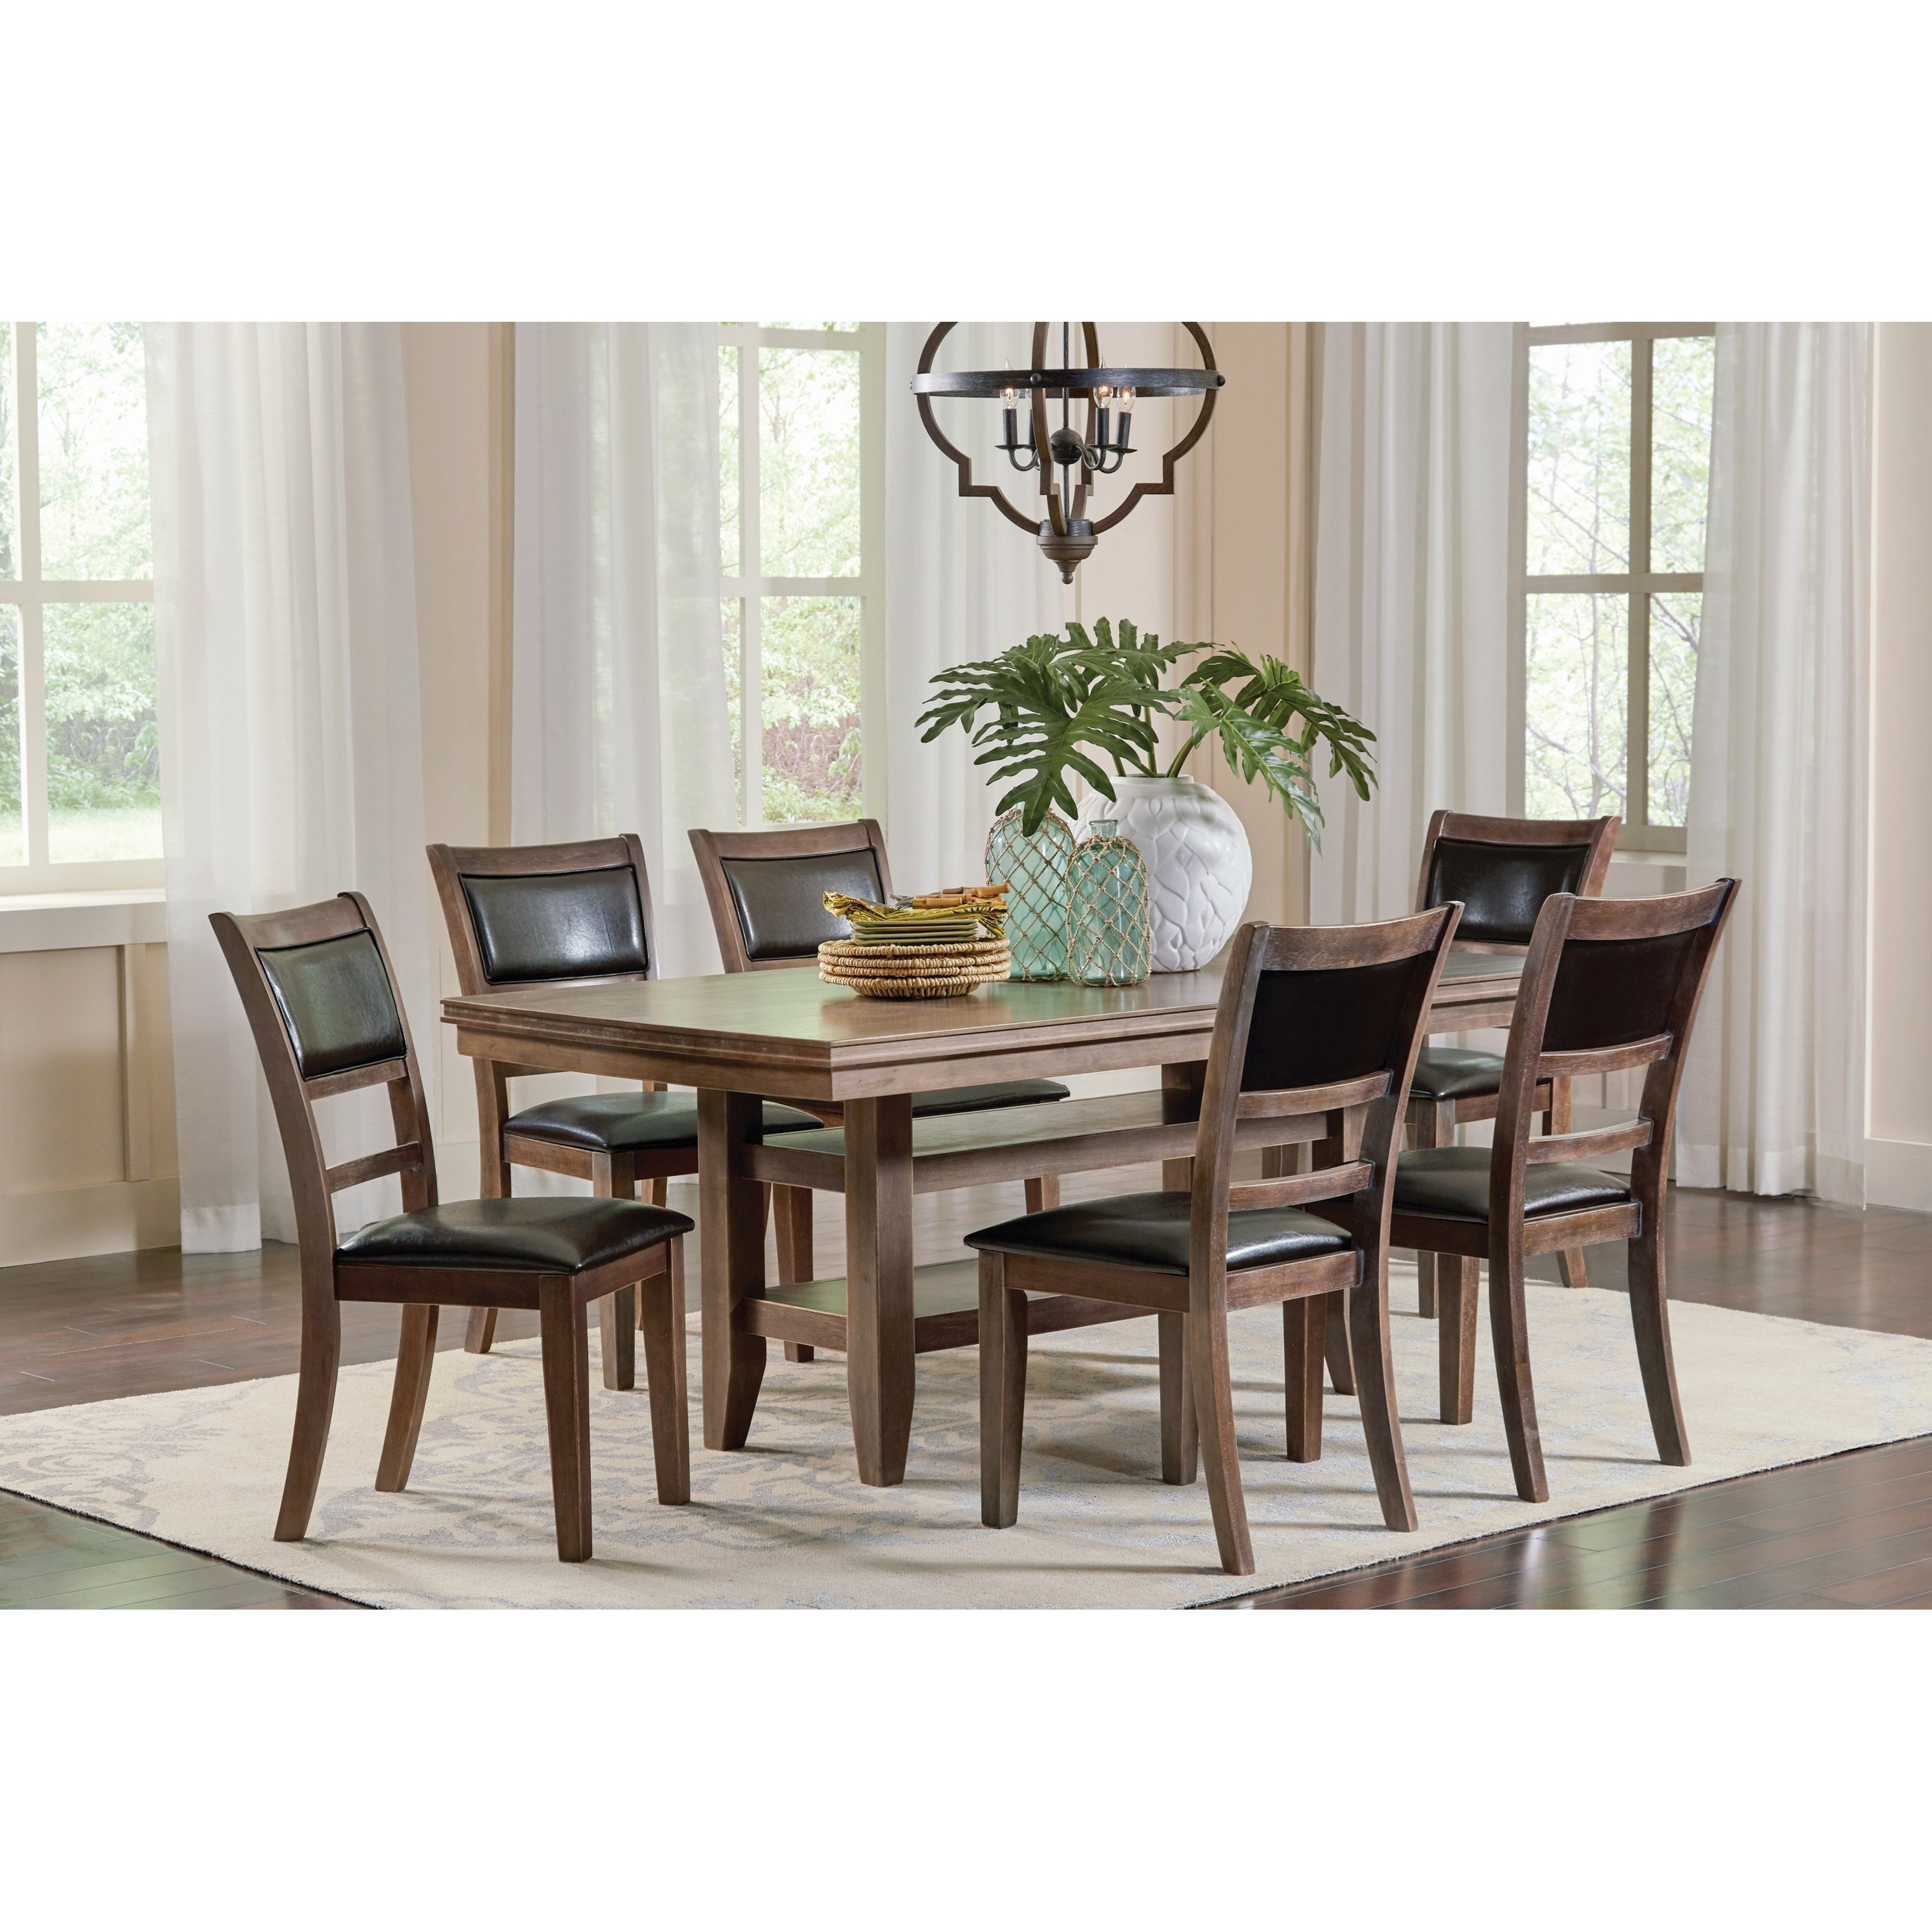 Coaster Bustamante 7 Piece Dining Table Set with 2 Open Shelves  sc 1 st  Prime Brothers Furniture & Coaster Bustamante 7 Piece Dining Table Set with 2 Open Shelves ...